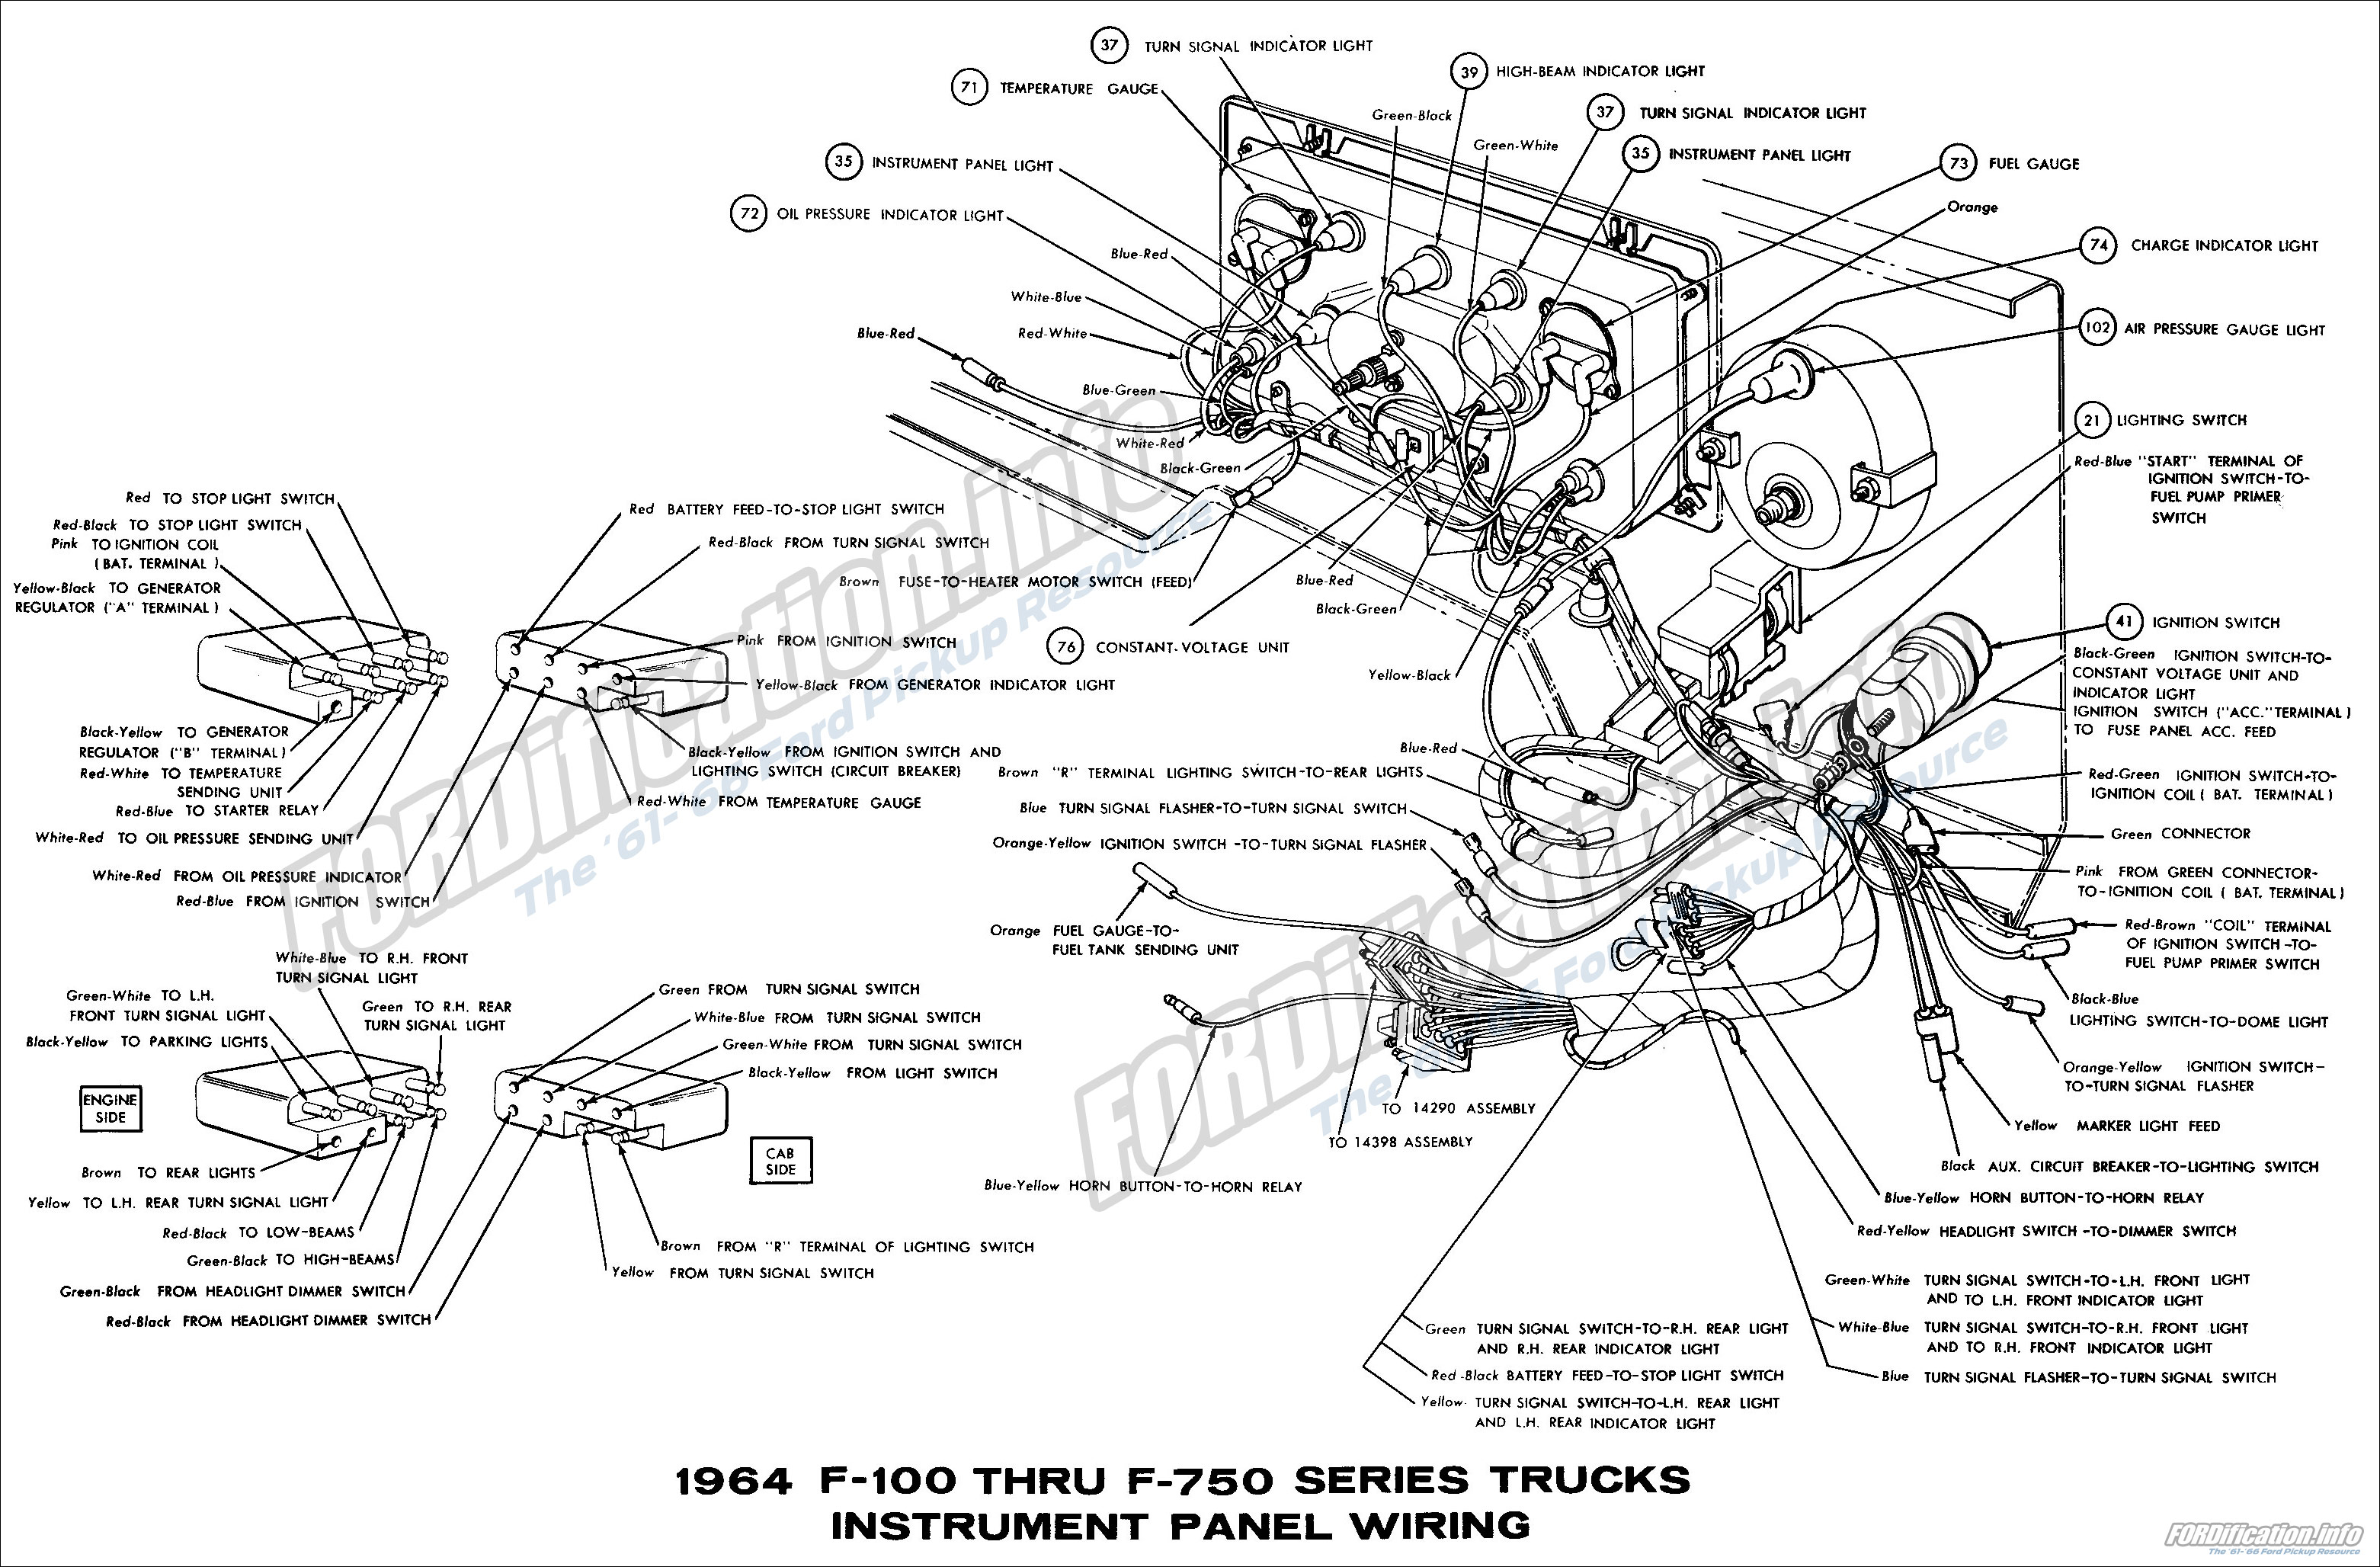 1964_02 1964 ford truck wiring diagrams fordification info the '61 '66 f750 wiring diagram at panicattacktreatment.co